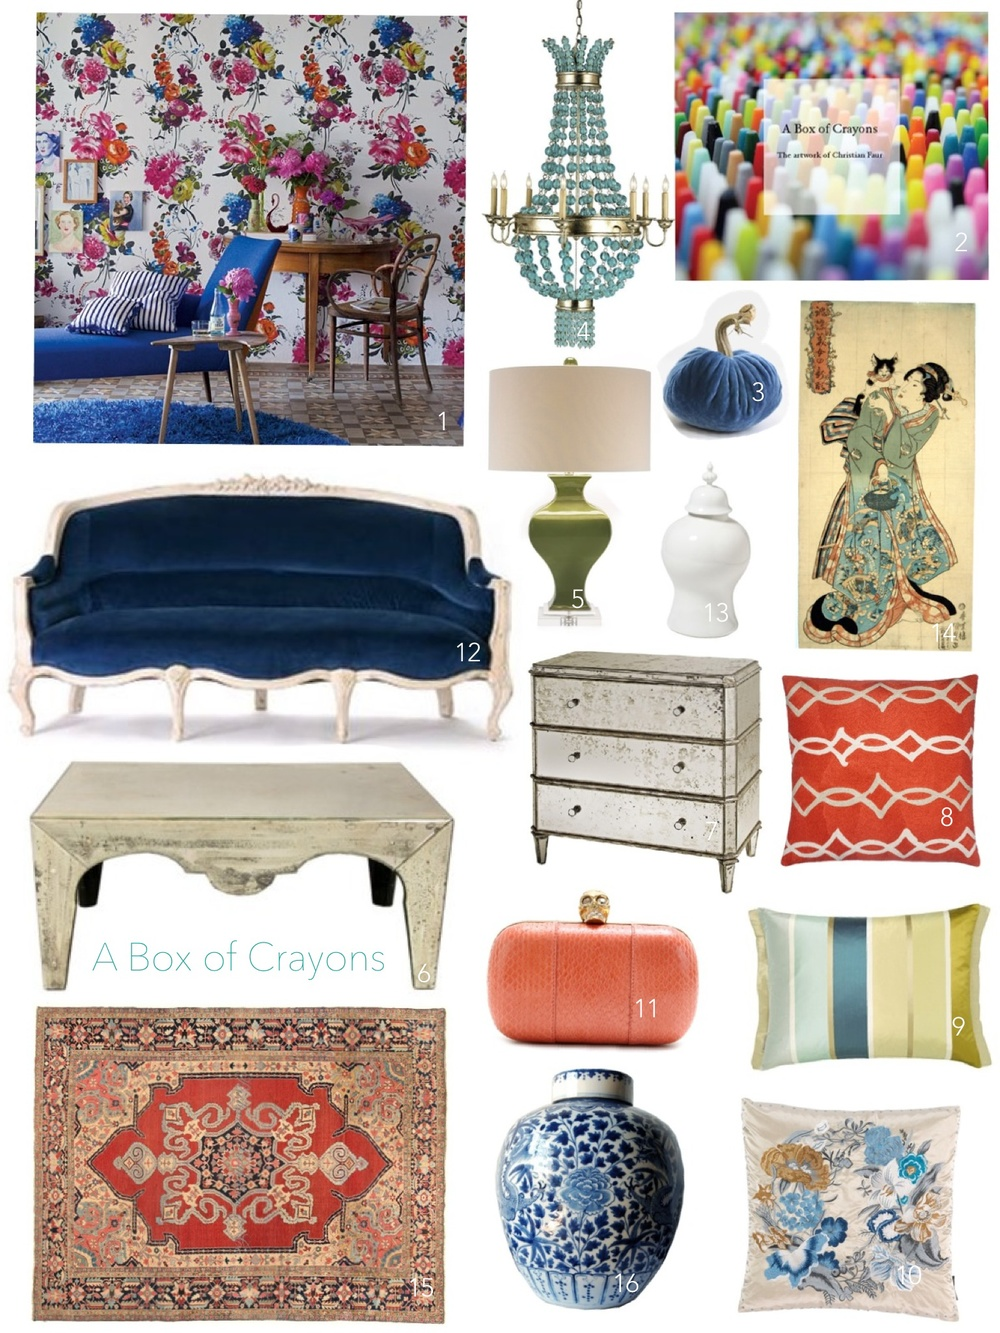 "Layout: Kimberly Kowalski, Allied ASID 1. Designers Guild wallpaper, Amrapali Collection, reminds us of English flower boxes / 2. ""A Box of Crayons: The Artwork of Christian Faur"" / 3. Sapphire blue velvet pumpkin by Plush Pumpkins available at Savvy Surrounding Style / 4-10; 13. Also available through Savvy. Please contact for more information / 11. Coral Snakeskin Clutch - Alexander McQueen / 12. Amelie Sofa - Anthropologie / 14. Antique art featuring Japanese Bobtail / 15. Antique Wool Rug / 16. 19th Century ginger jar"